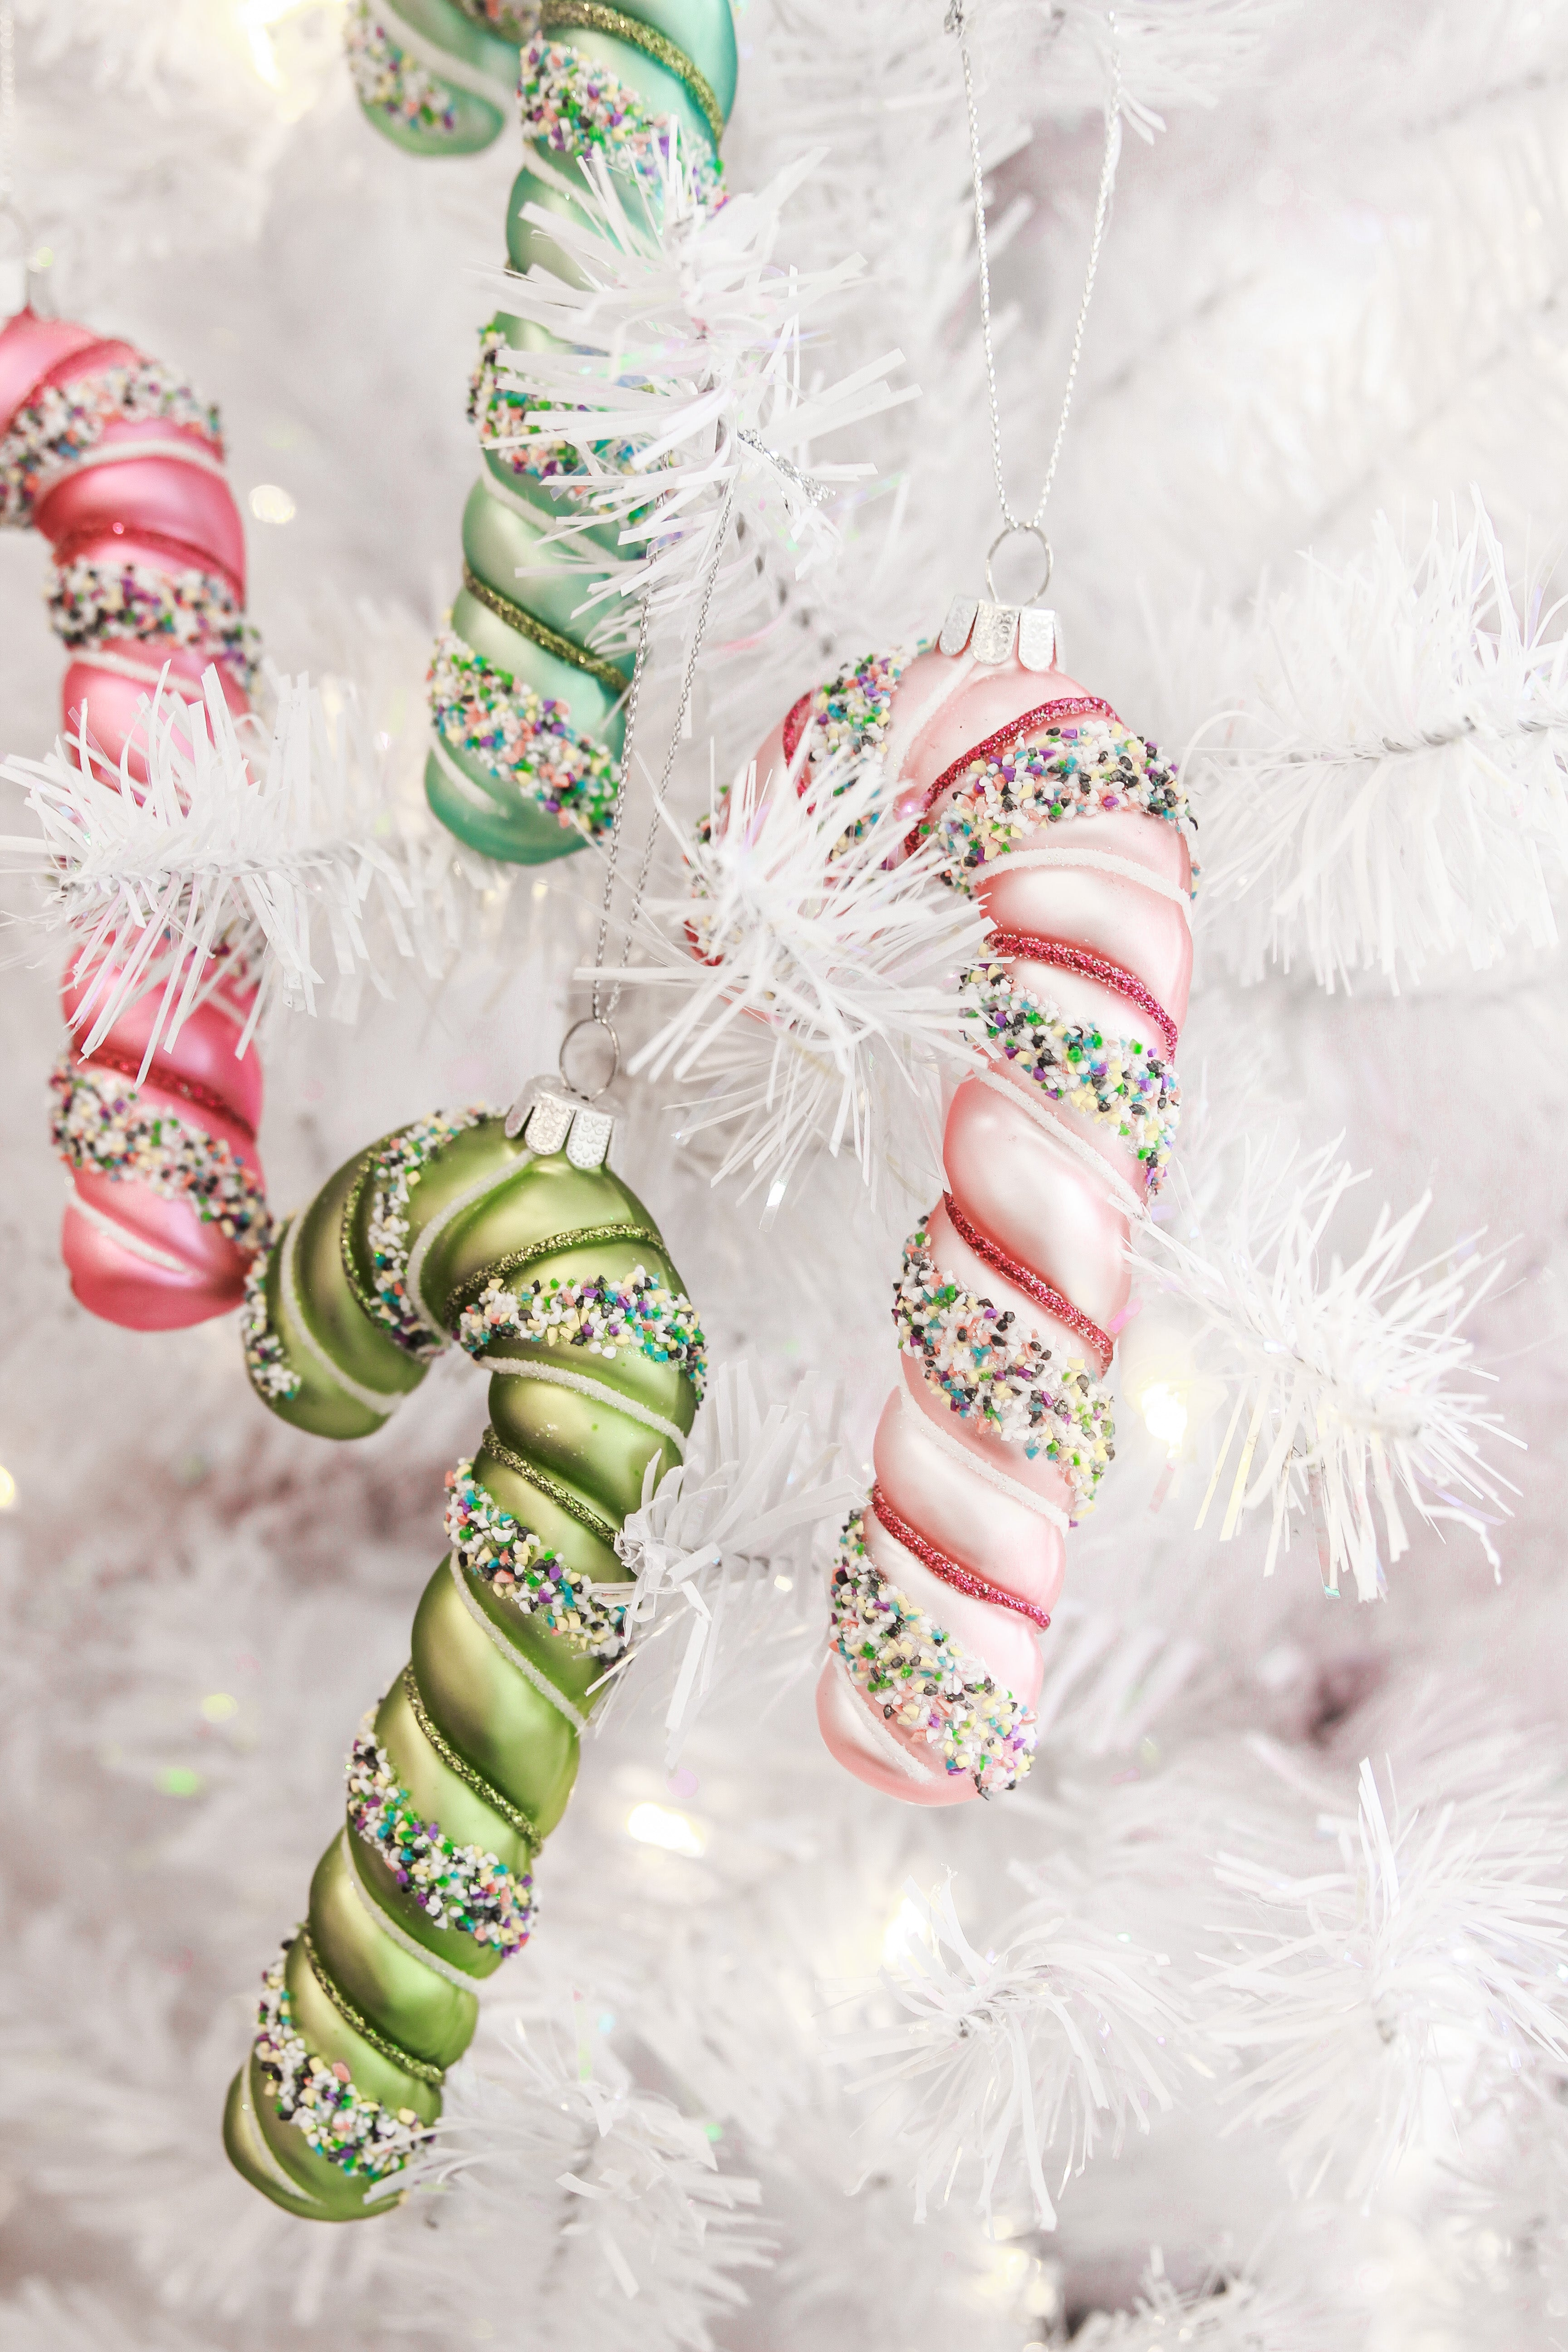 CUTE CANDY CANE ORNAMENT